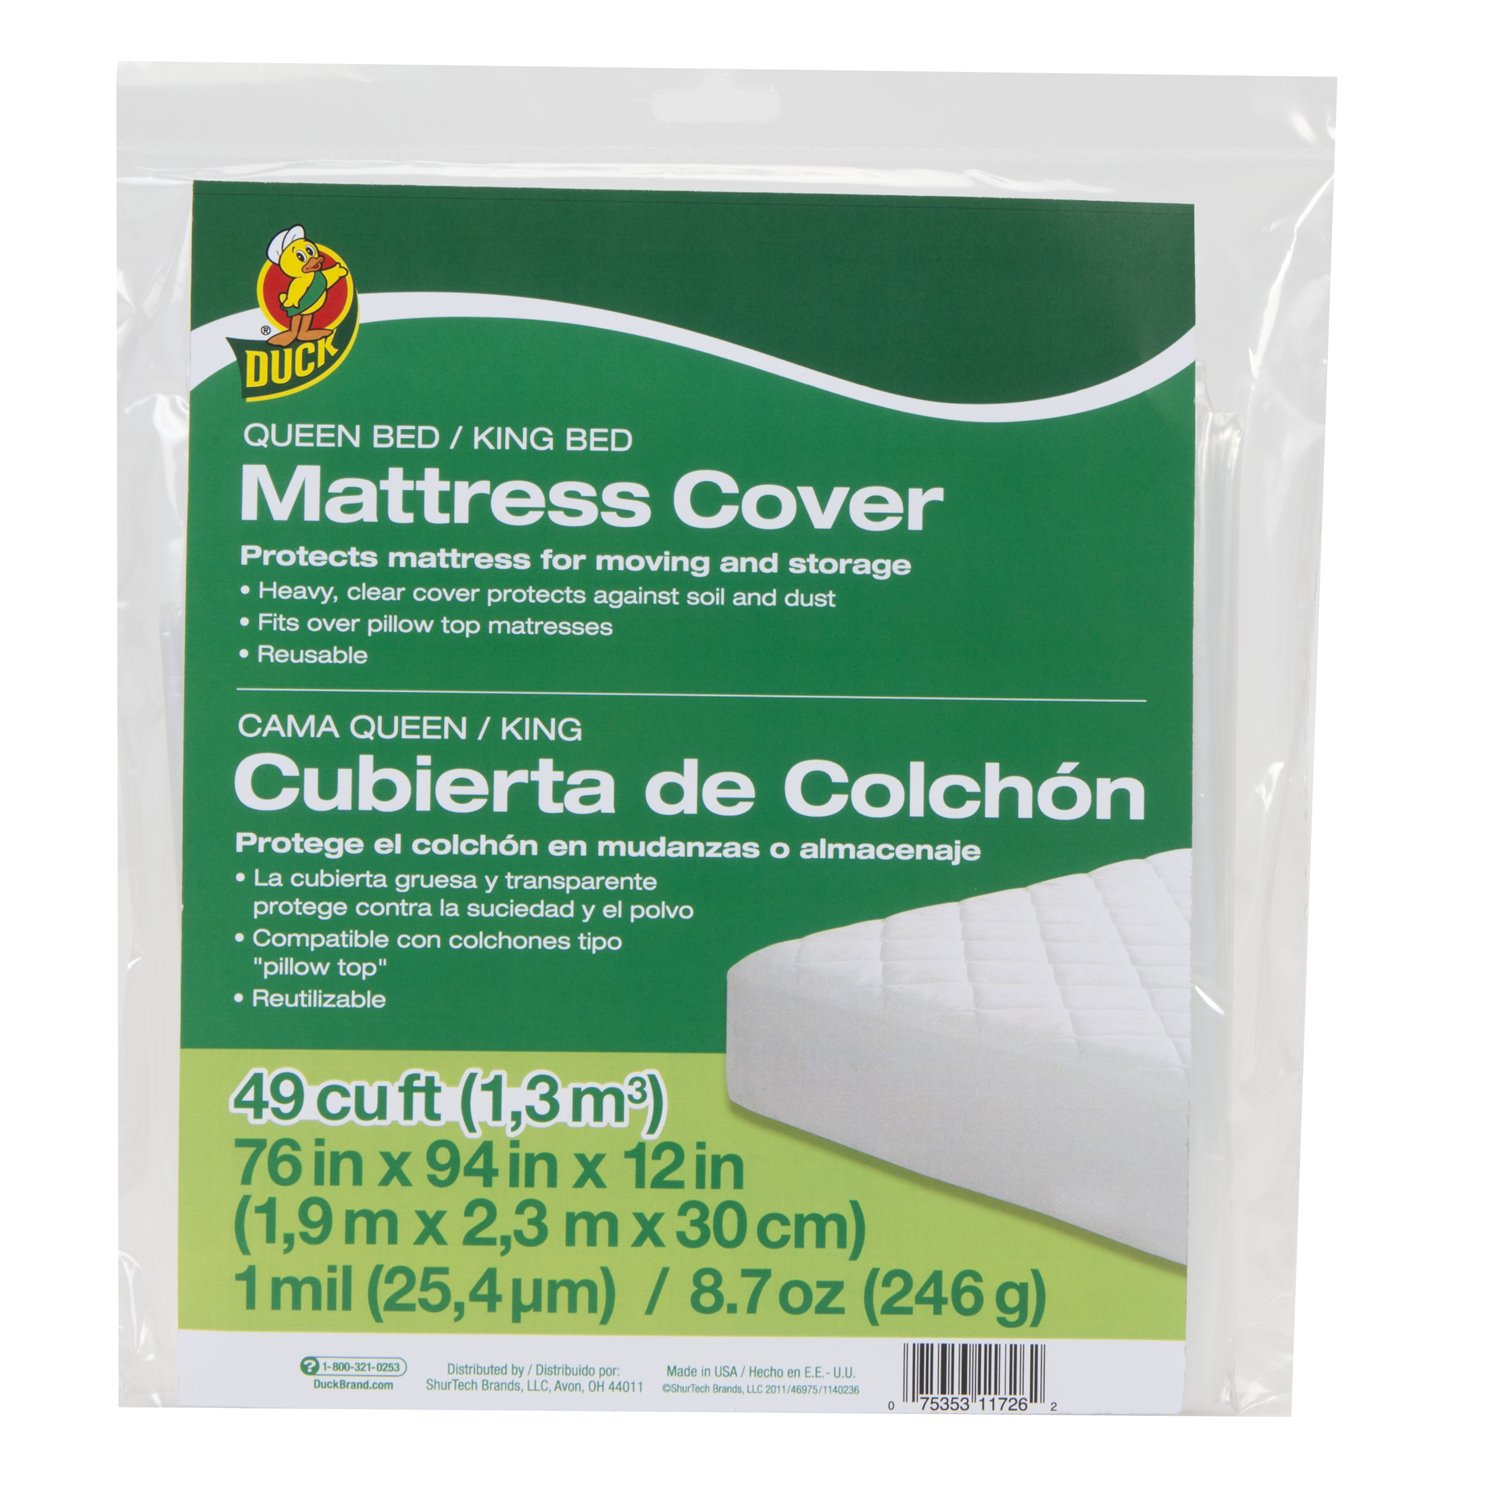 Duck Brand 1140236 King or Queen Sized Mattress Cover, 76